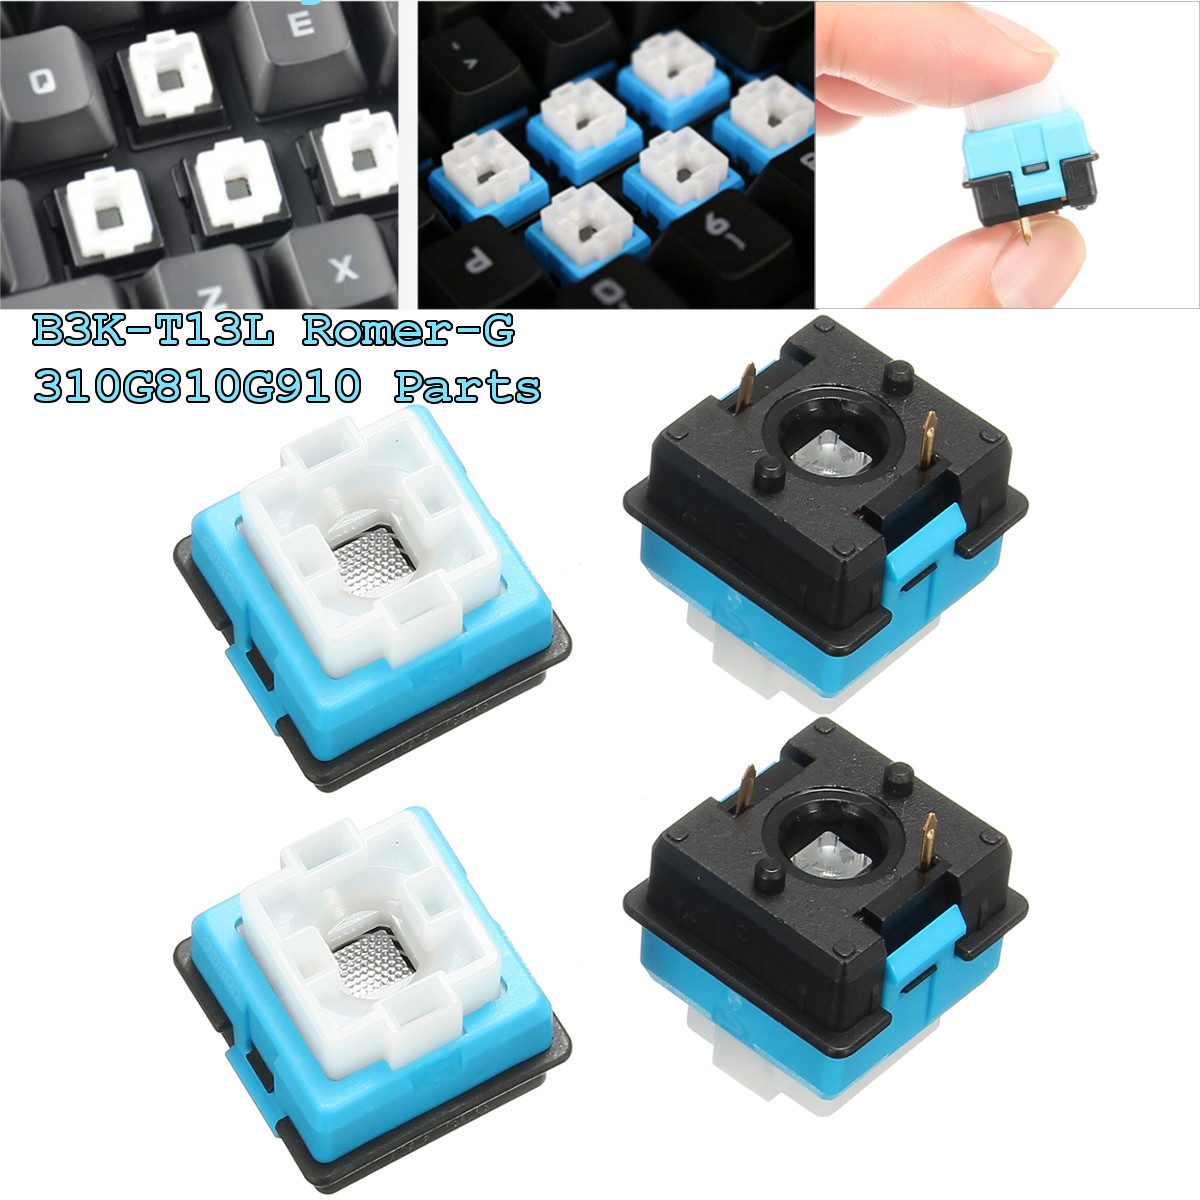 4pcs RGB Original For OMRON Romer-G Switch For Ormon Axis For Logitech G910 G810 G310 Pro Cherry Mechanical Keyboard Switch